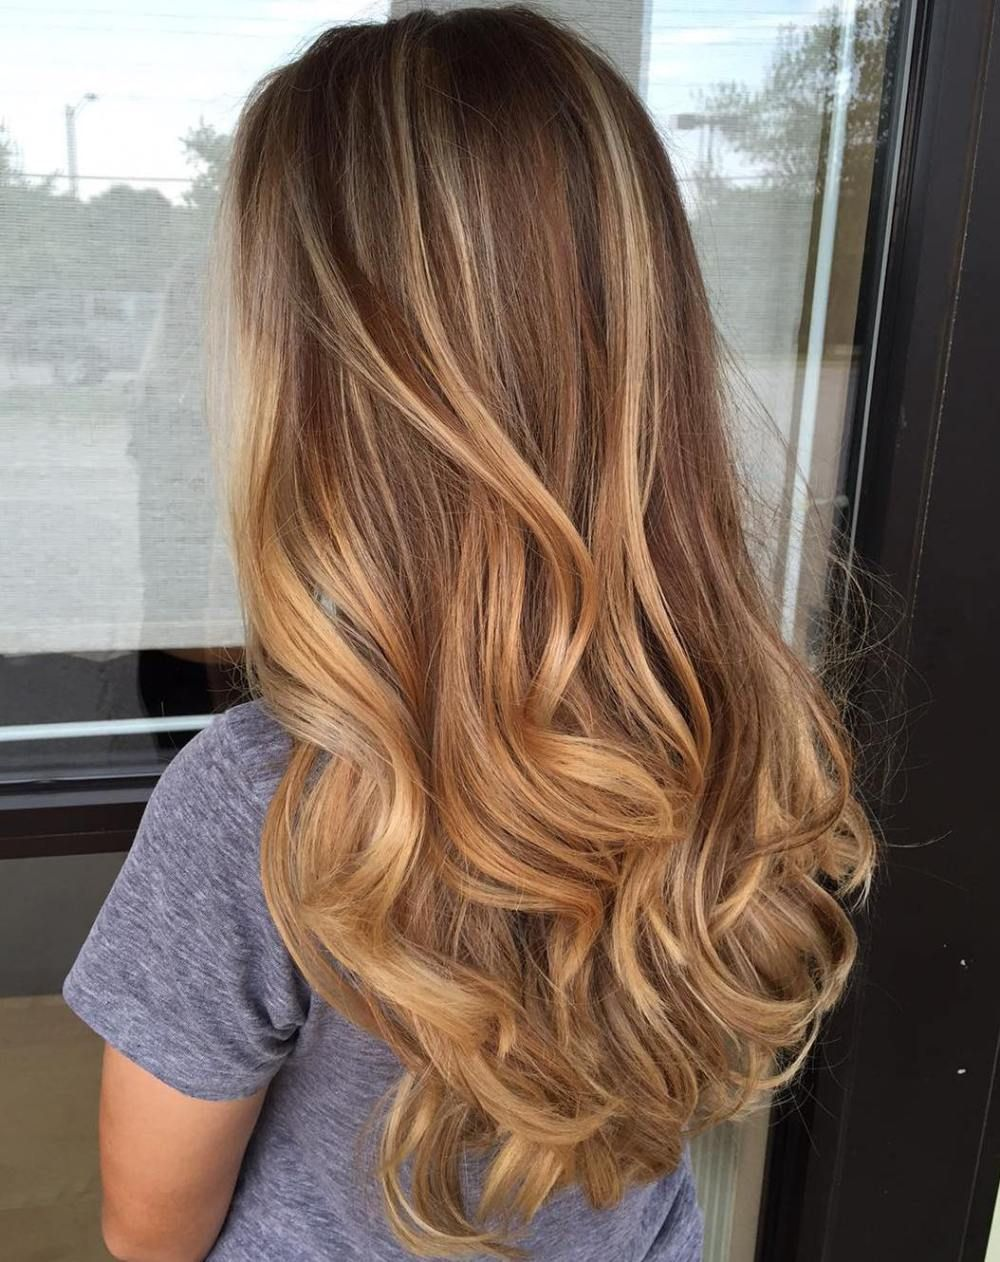 Balayage Hairstyle Honey Blonde Balayage Hair  Cabelos  Pinterest  Blonde Balayage